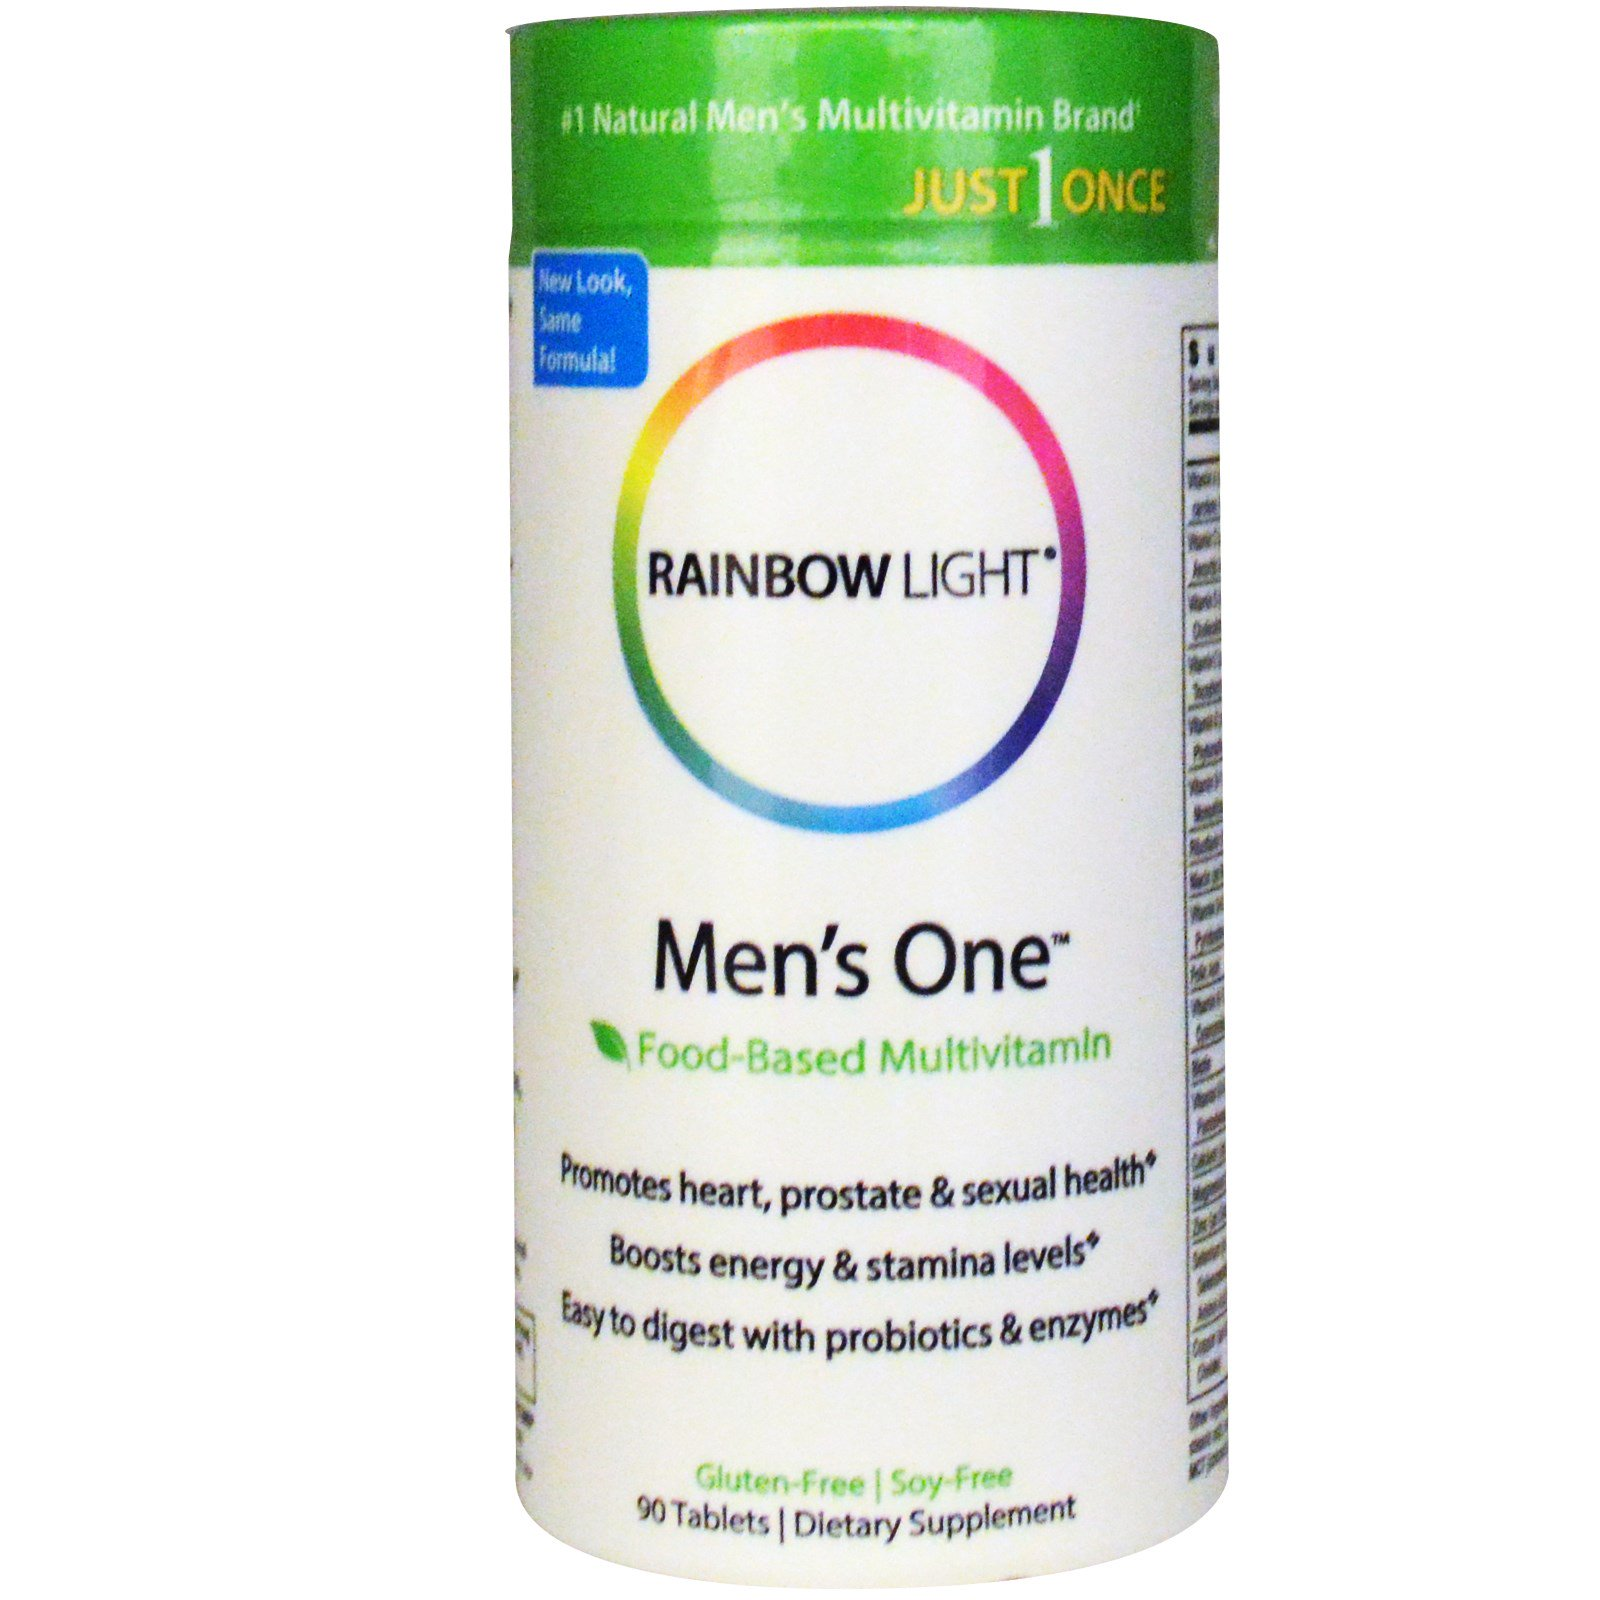 Buy 1, Get 1 50% OFF. FREE Gift With Purchase. Not sold in stores. Buy 1, Get 1 50% OFF. Not sold in stores. Add to Cart. Rainbow Light Men's One Multivitamin, Tablets ( ea) Rainbow Light Men's One Multivitamin, Tablets. Compare. employees or .